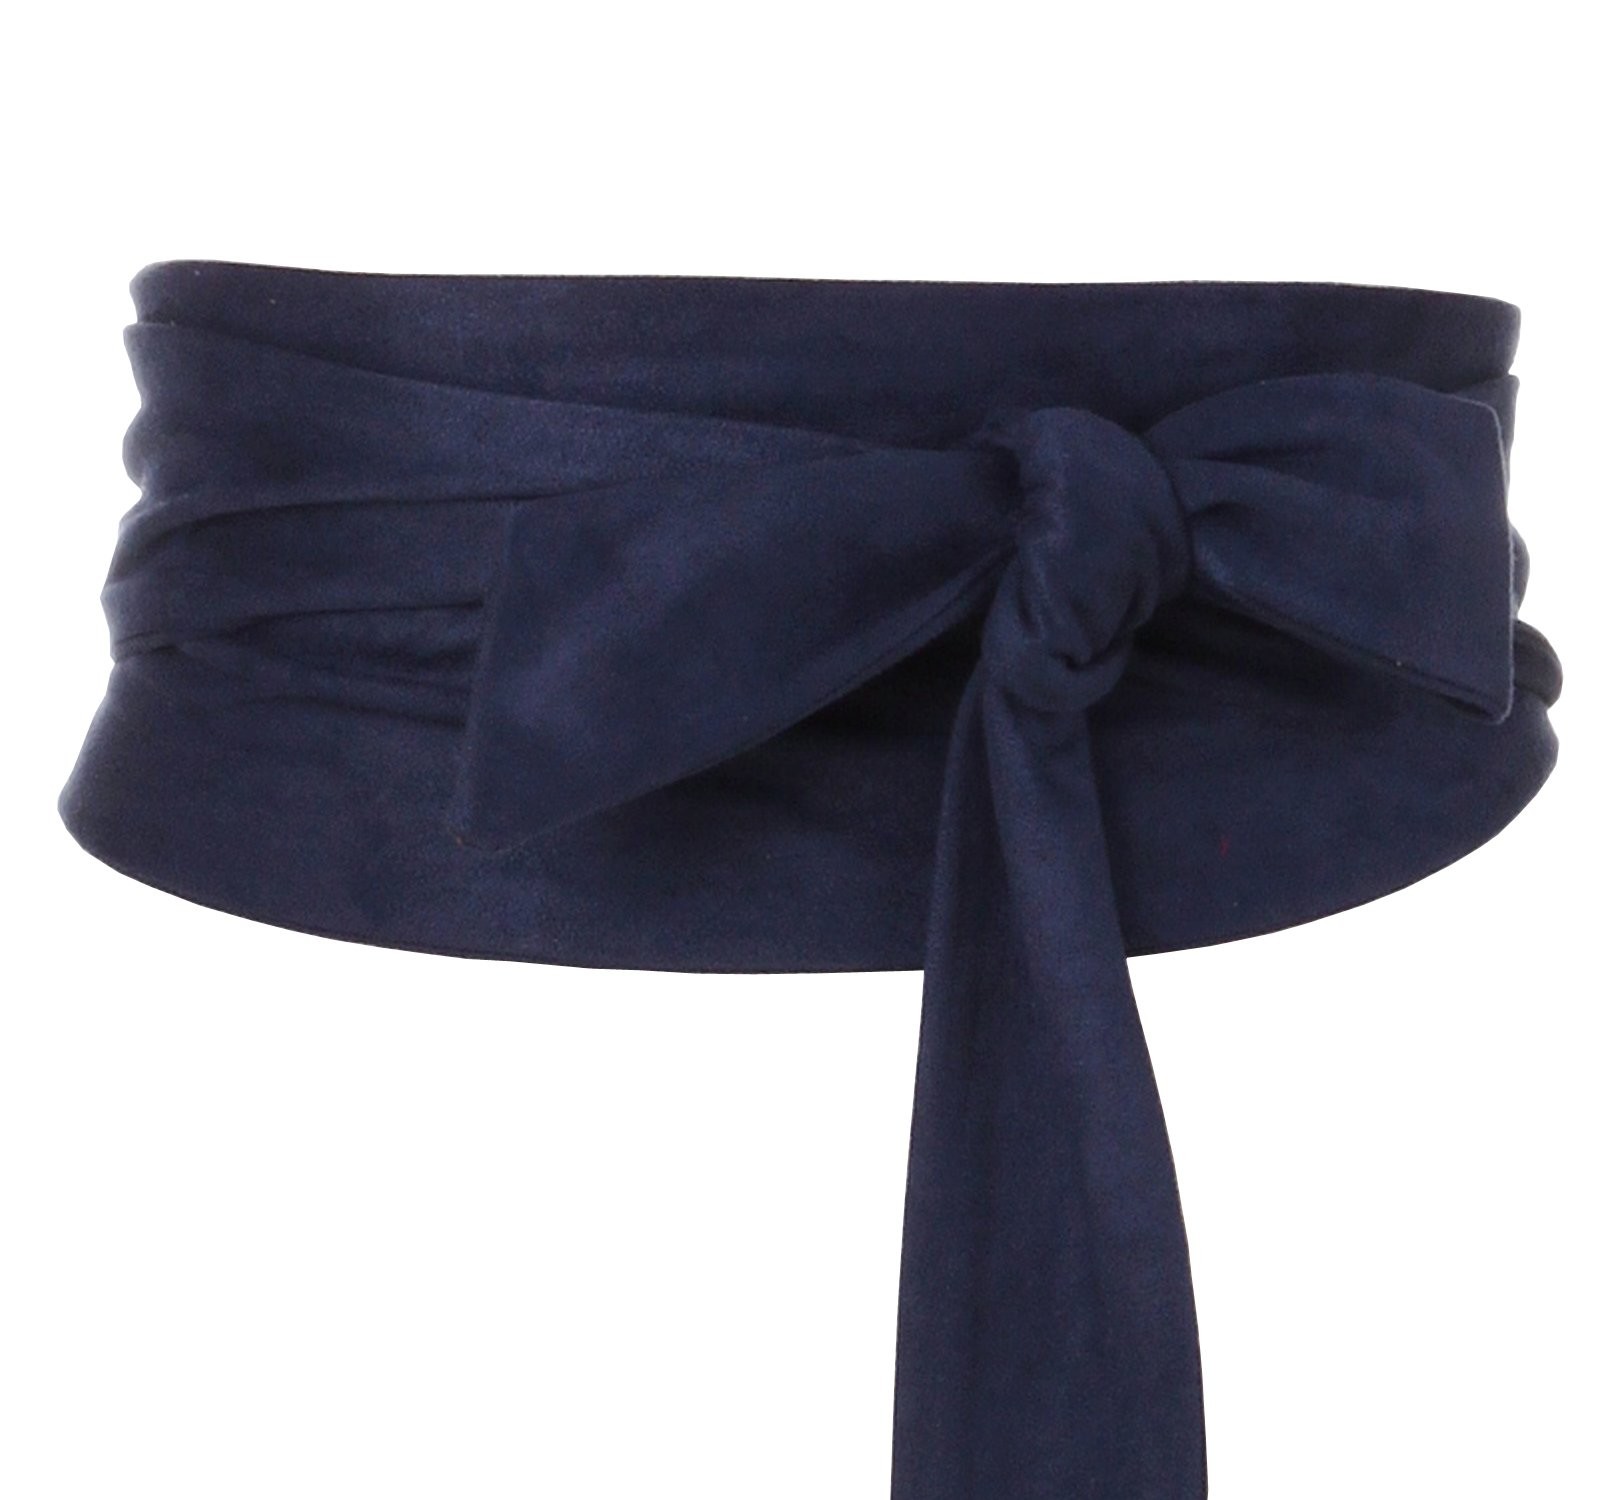 Shengweiao Women's Self Tie Wrap Around Obi Waist Band Cinch Boho Belt (Dark Blue)